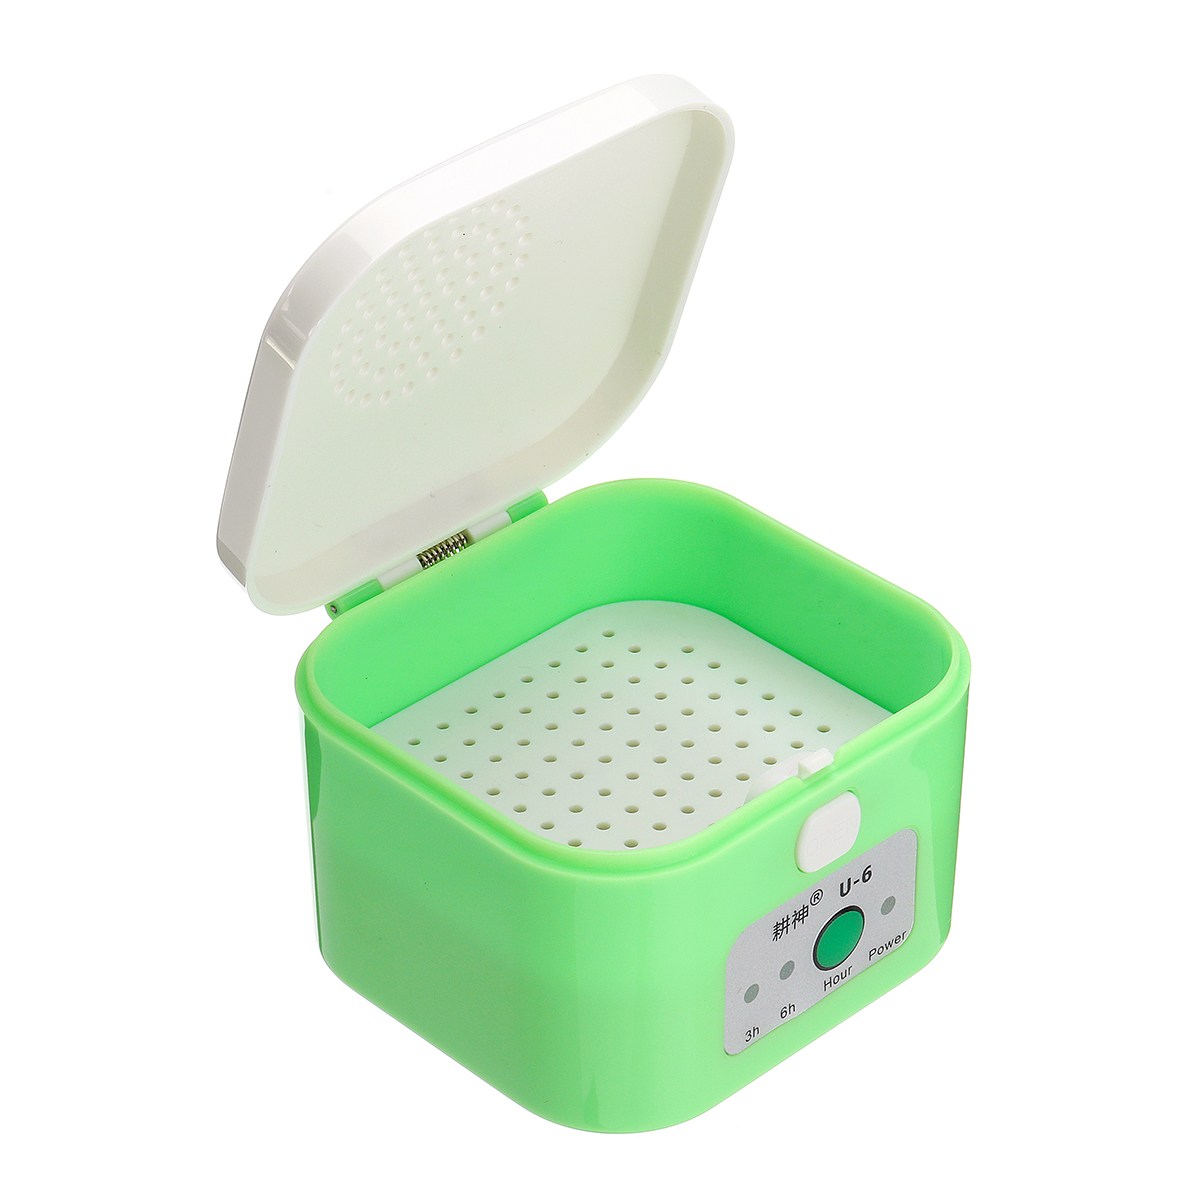 Digital Hearing Aid Dryer Electric Drying Box Dehumidifier 3/6 Hour Timer Moisture Proof Maintain